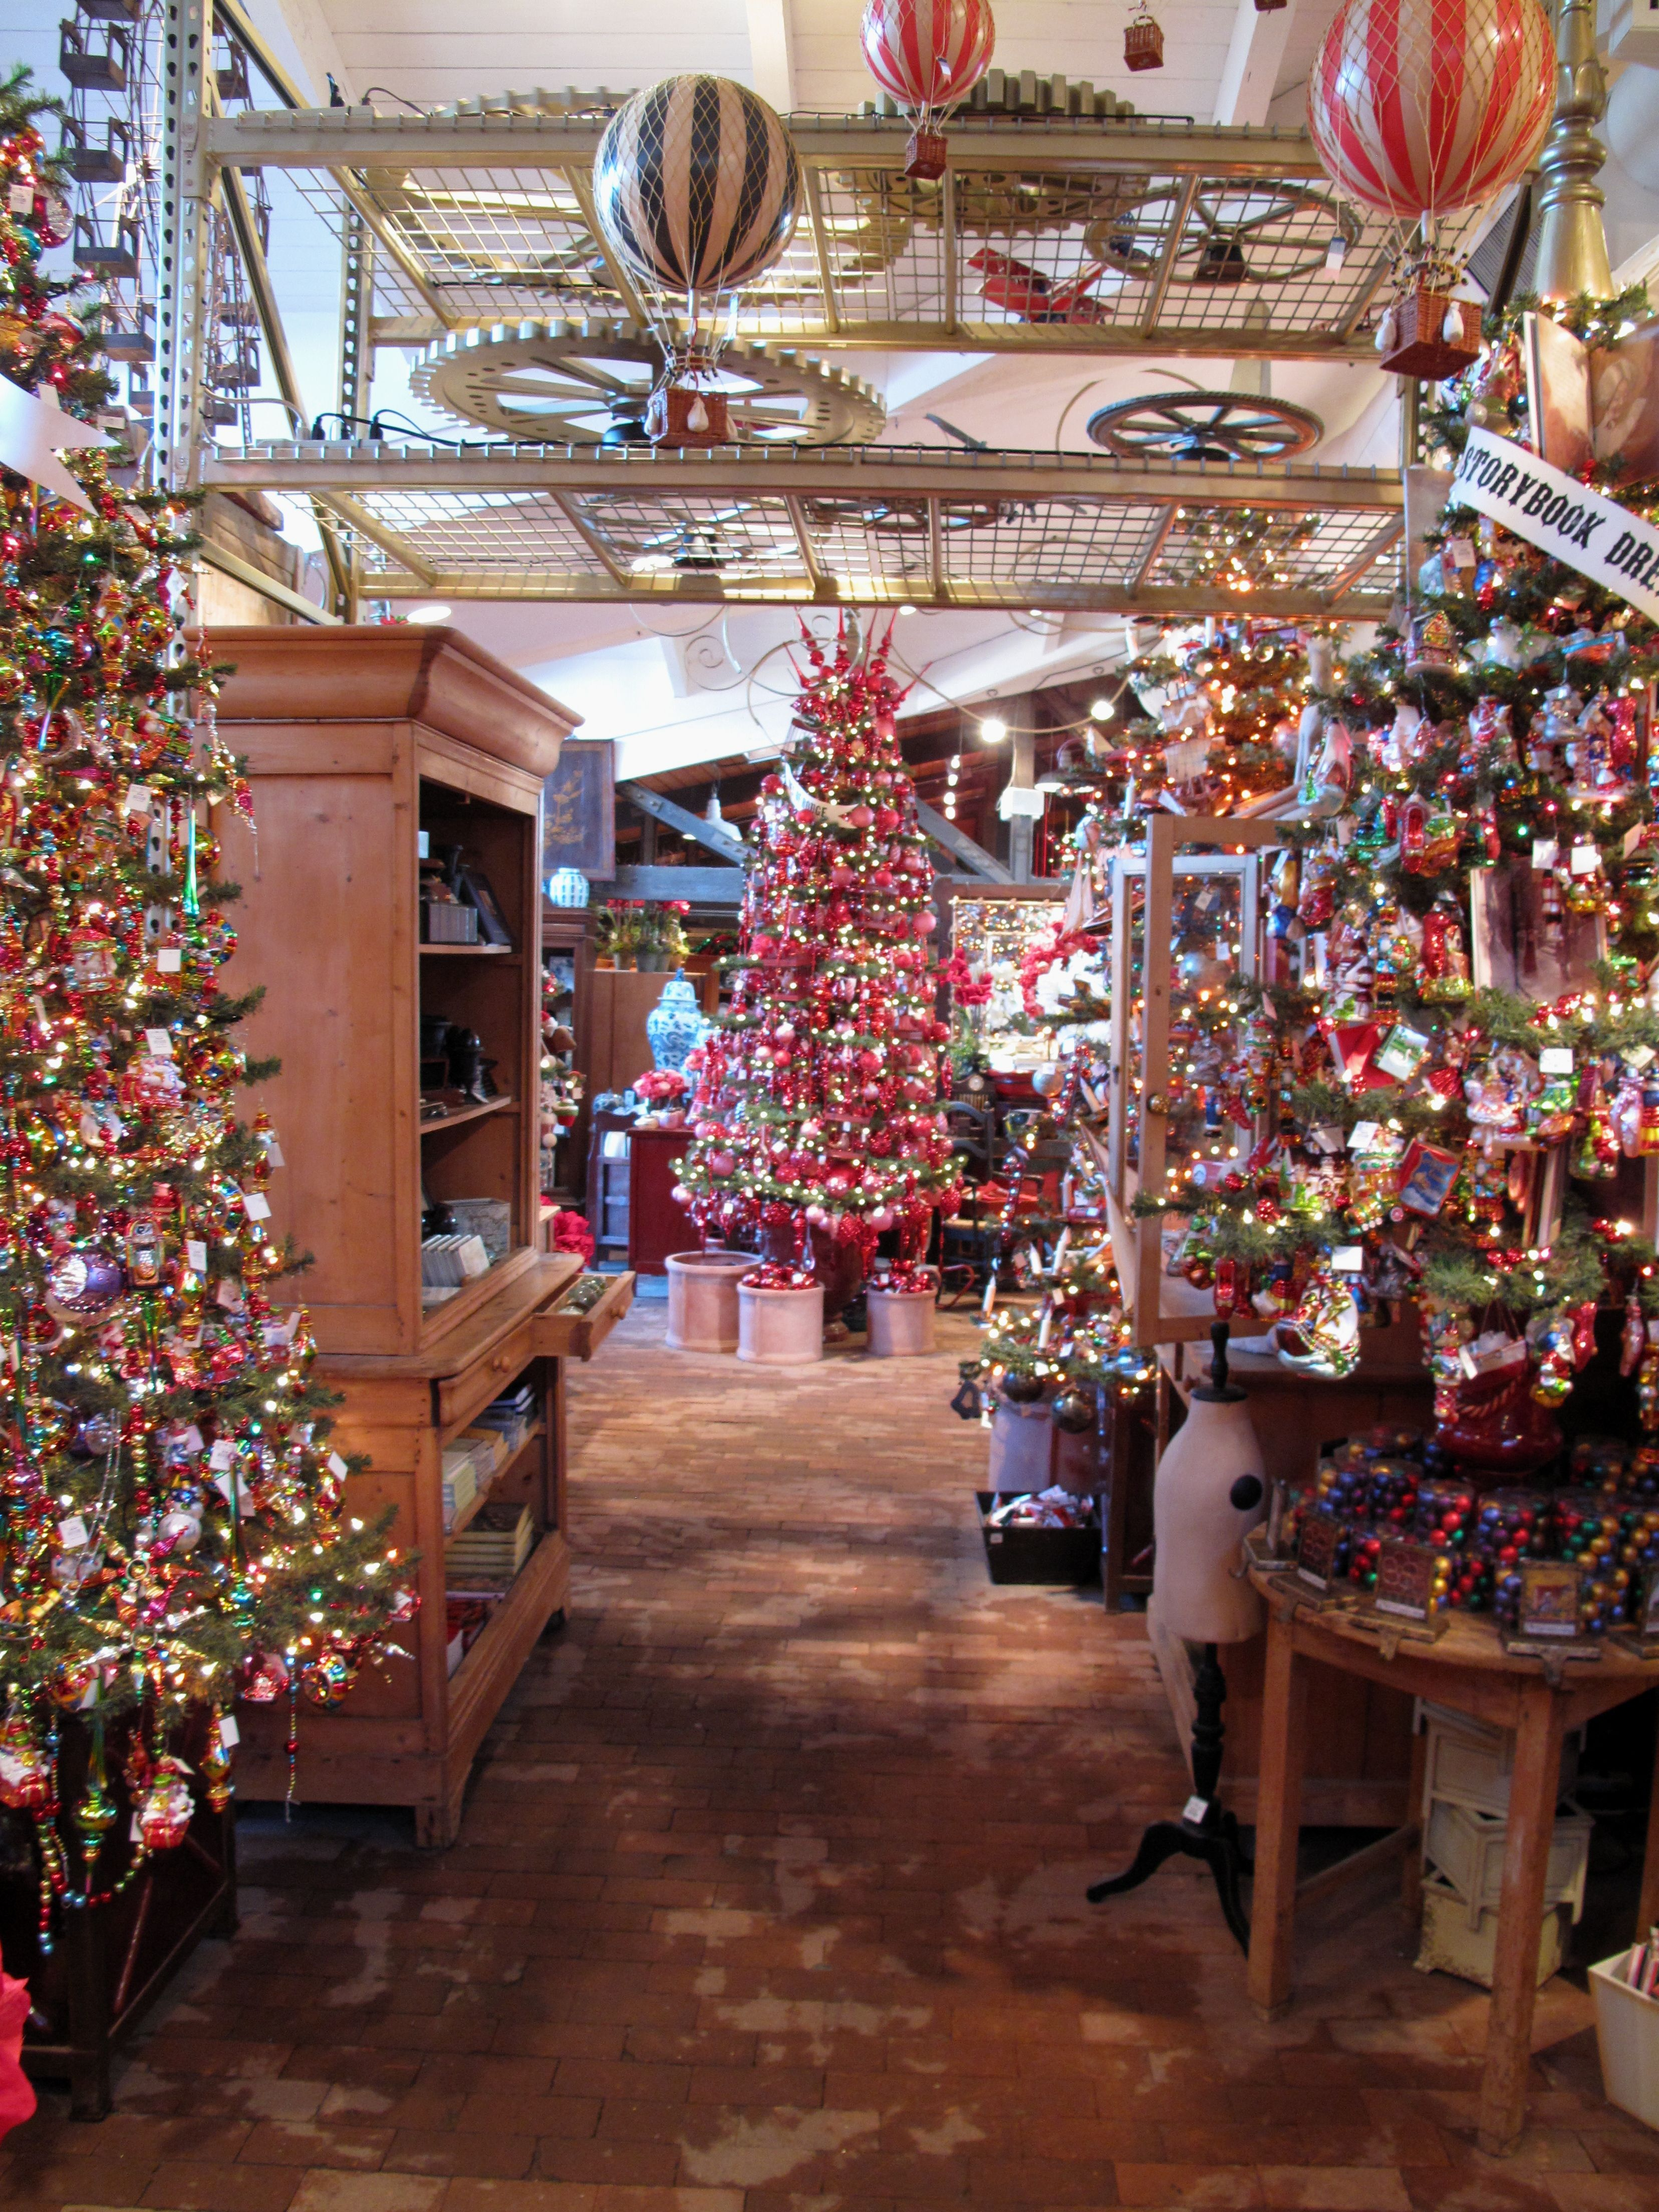 6671f7d42219eb7f7b6ea412d9543b51 - When Does Rogers Gardens Decorated For Christmas